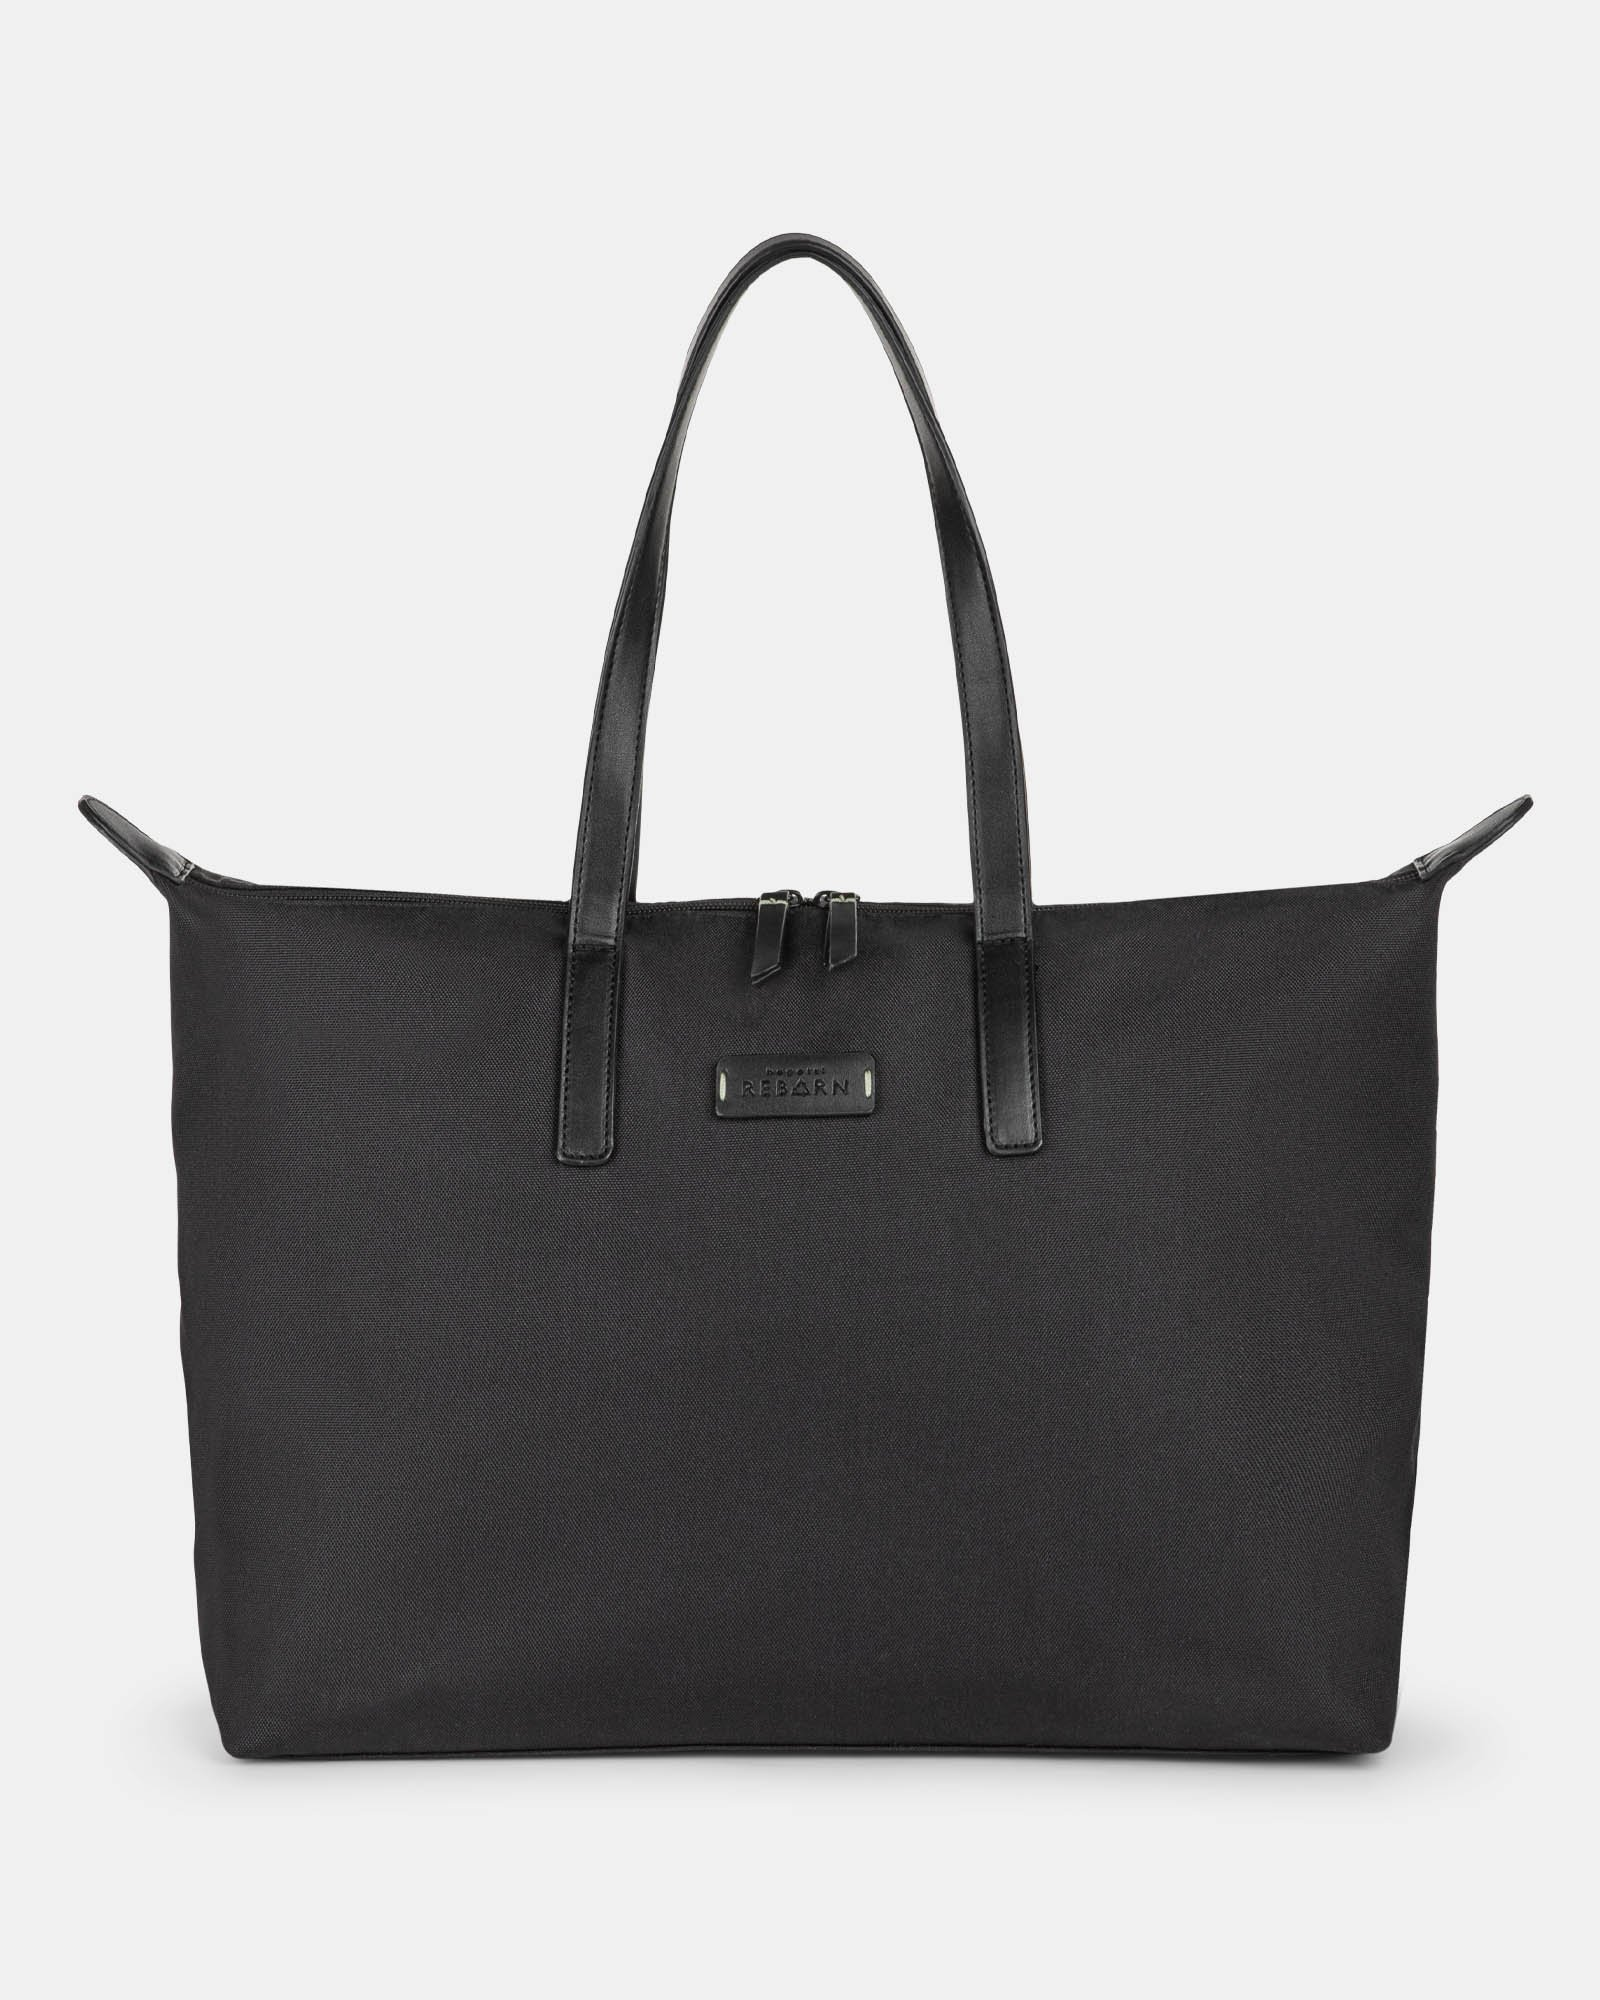 Bugatti – Reborn Collection – Tote bag with integrated shoe pocket – Made of 100% Recycled Material - Bugatti - Zoom